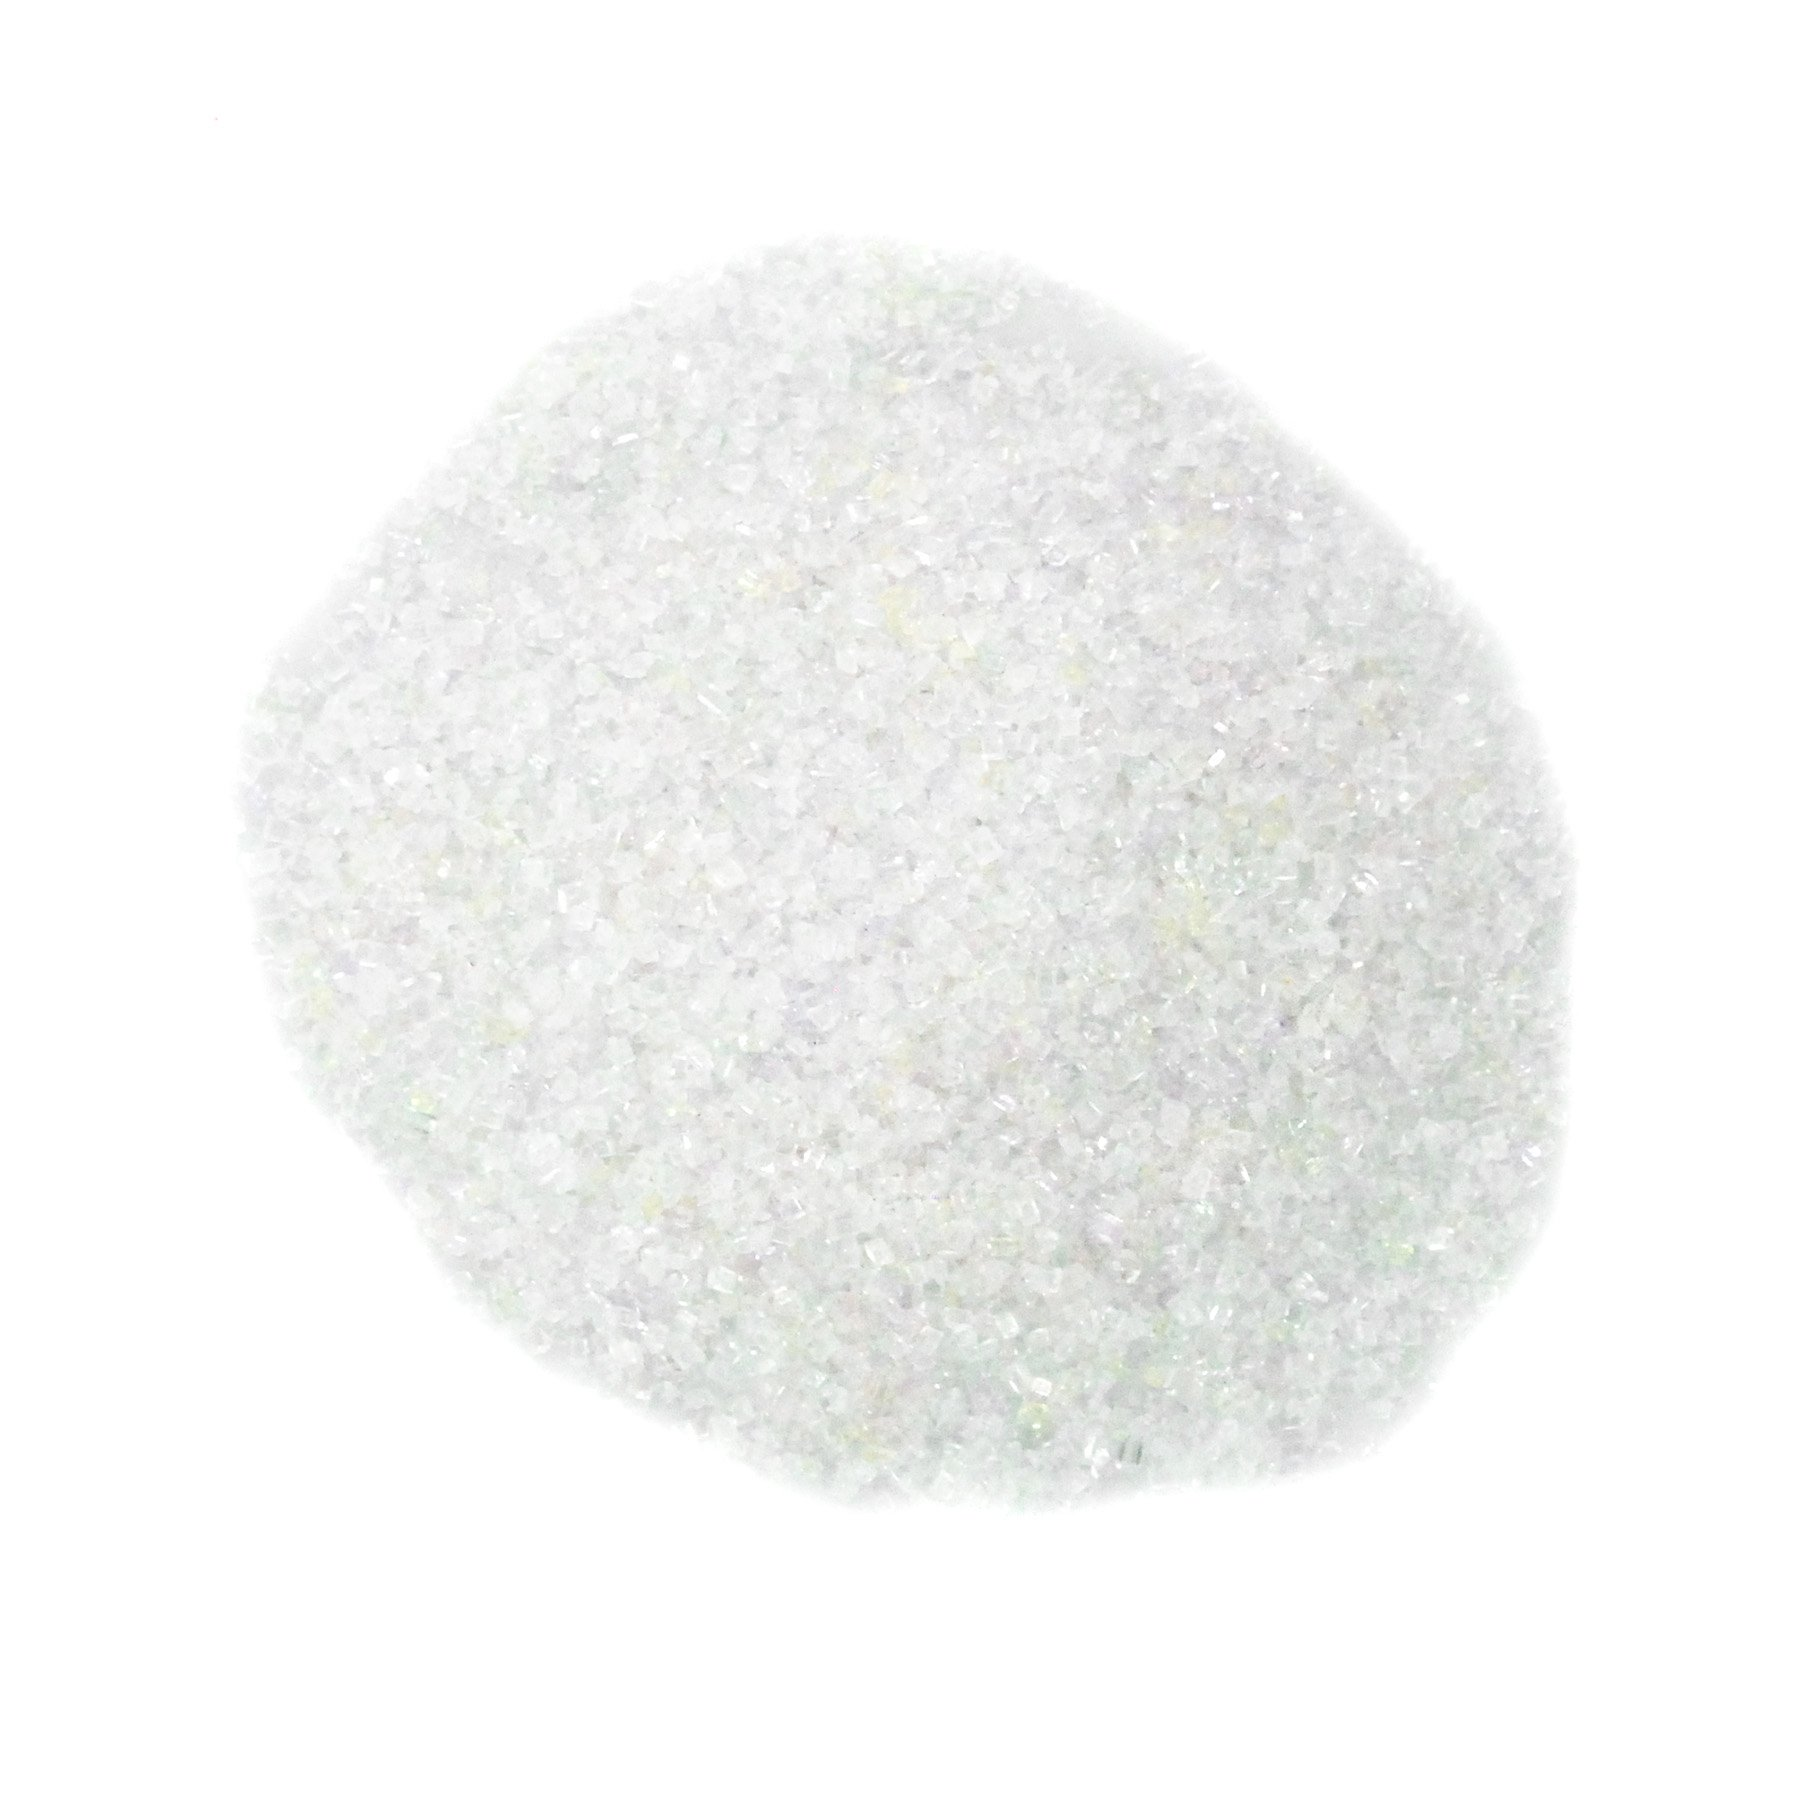 Dress My Cupcake DMC27011 Decorating Sanding Sugar for Cakes, 16-Ounce, Opal White